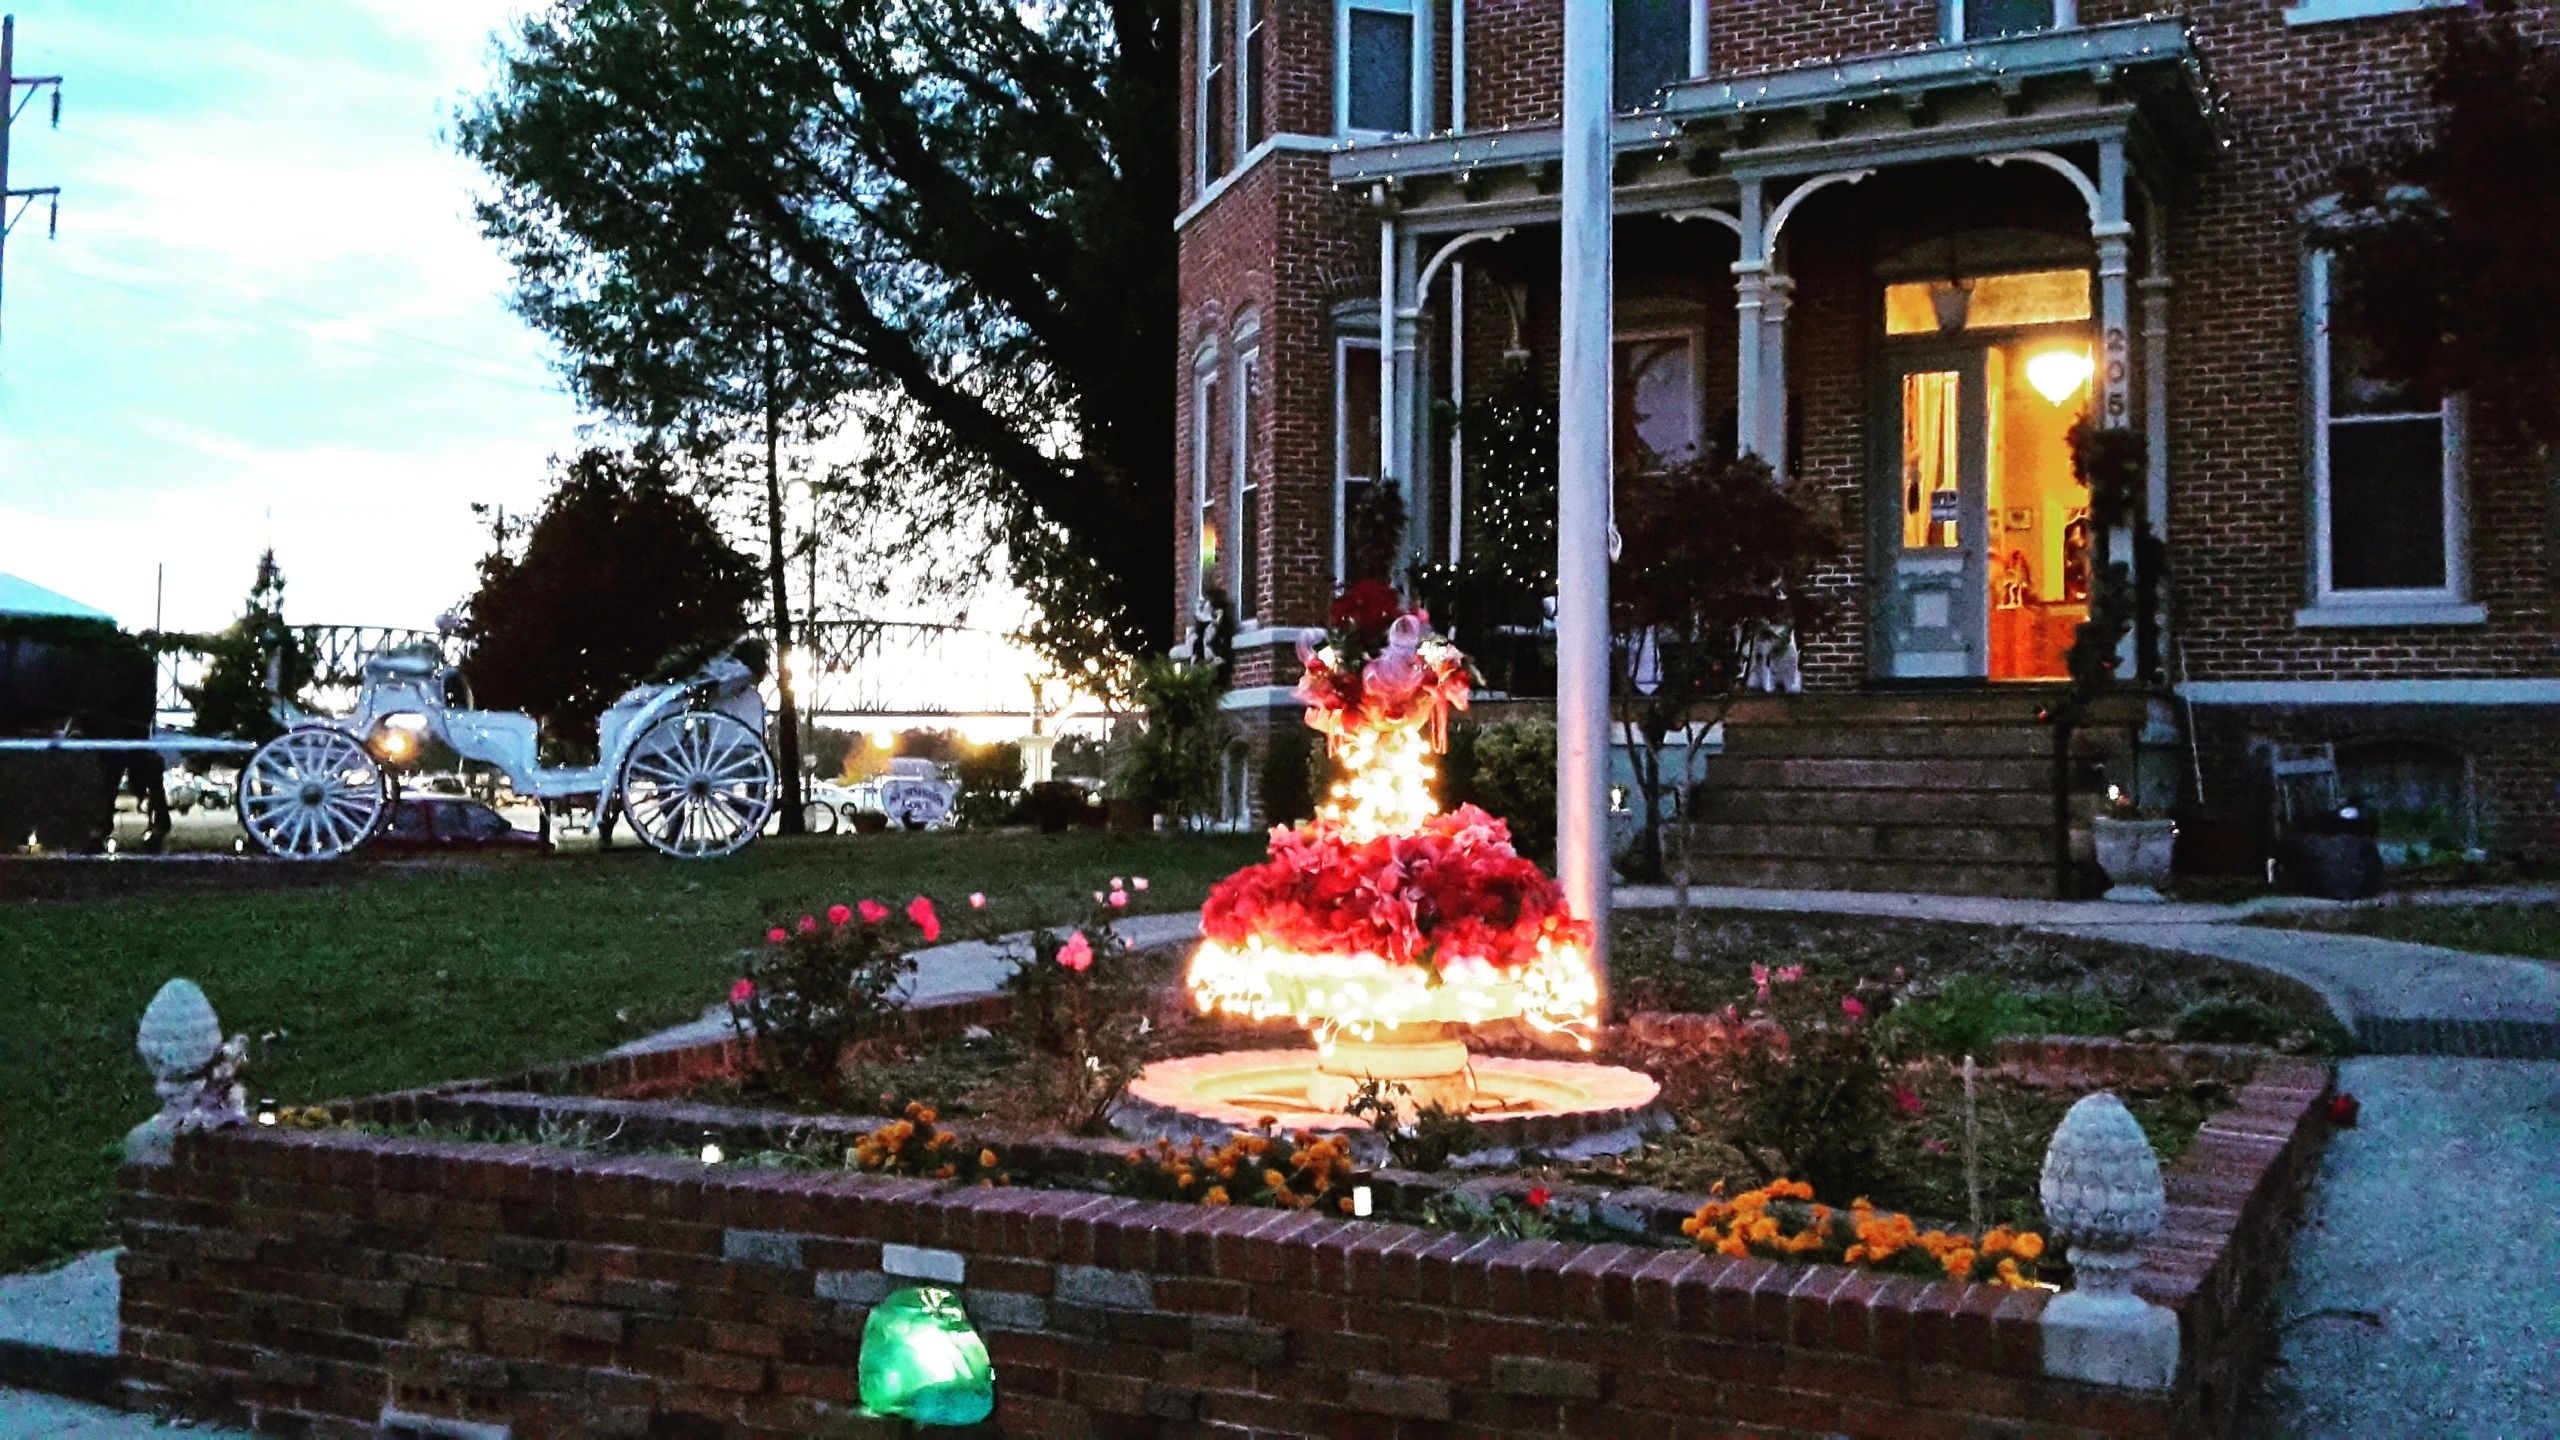 Front fountain with 3 layers of lights and poinsettias.